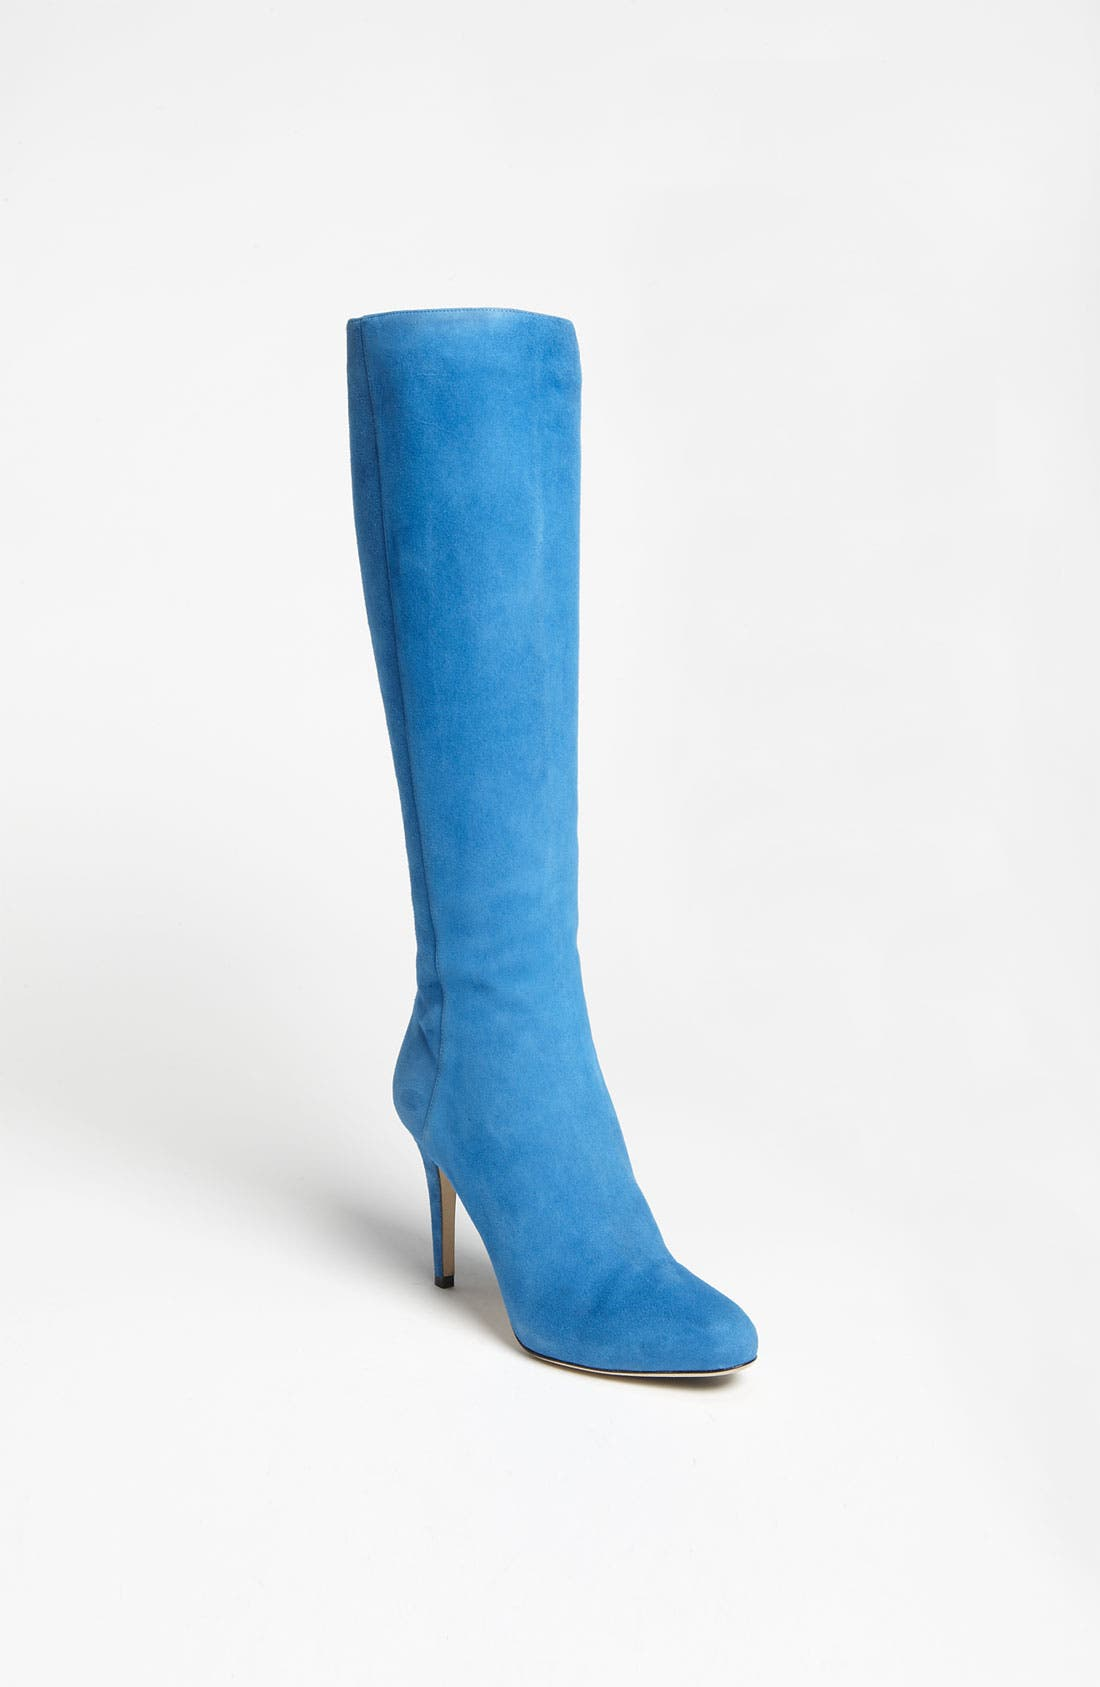 Alternate Image 1 Selected - Jimmy Choo 'Glory' Tall Platform Boot (Nordstrom Exclusive)